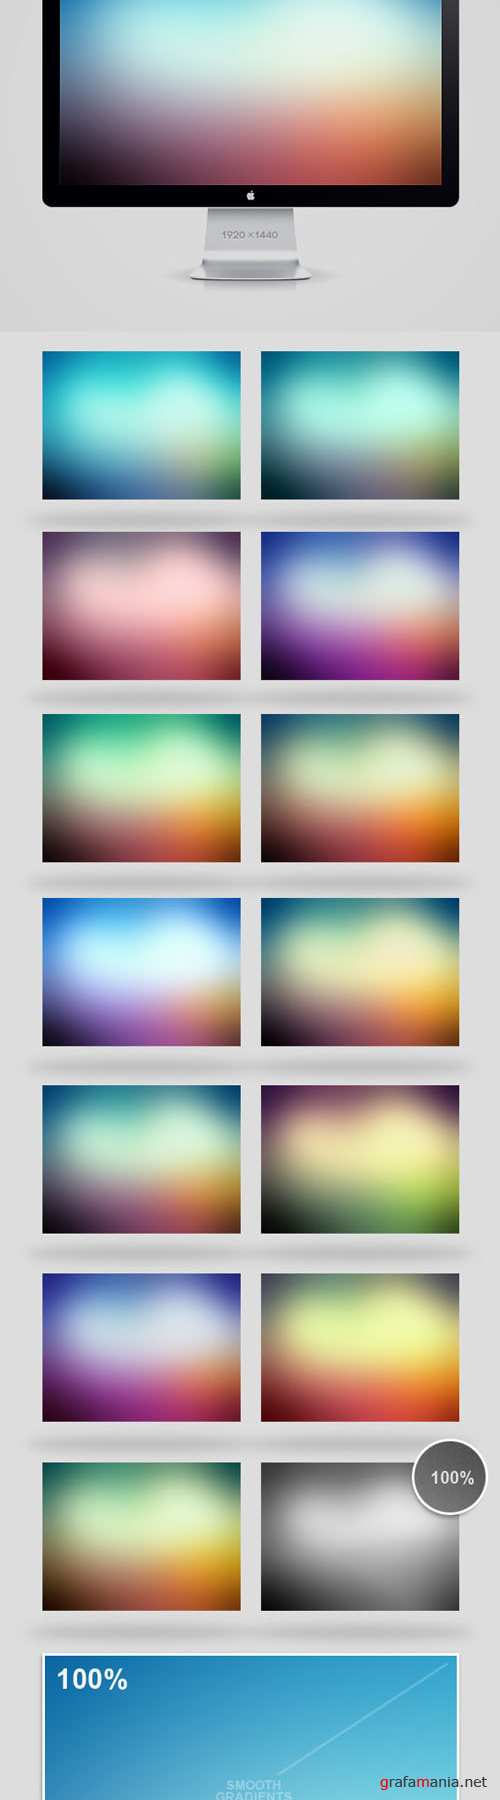 15 Soft Backgrounds Pack